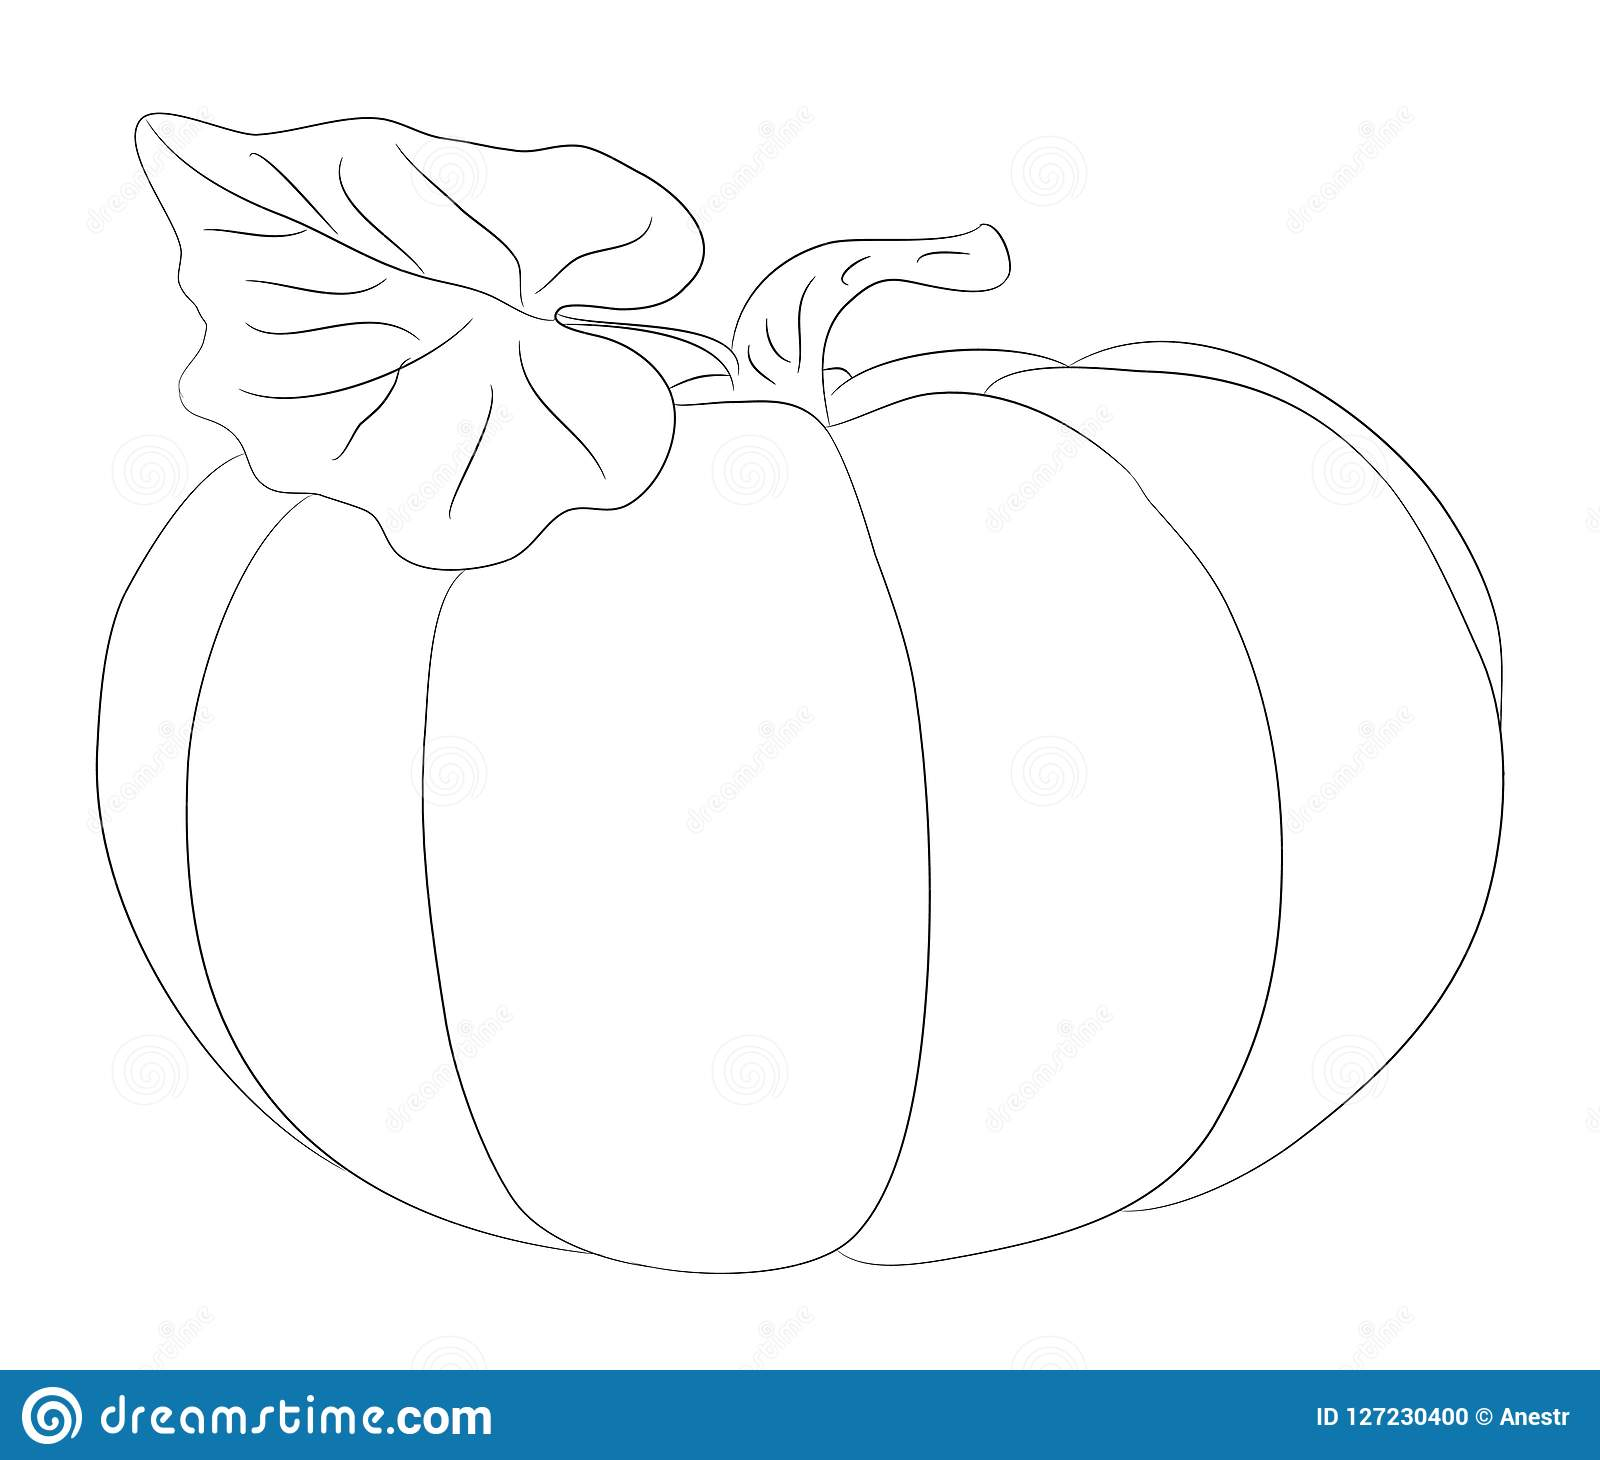 Vegetables And Fruits Drawing Lines Vector Stock Vector